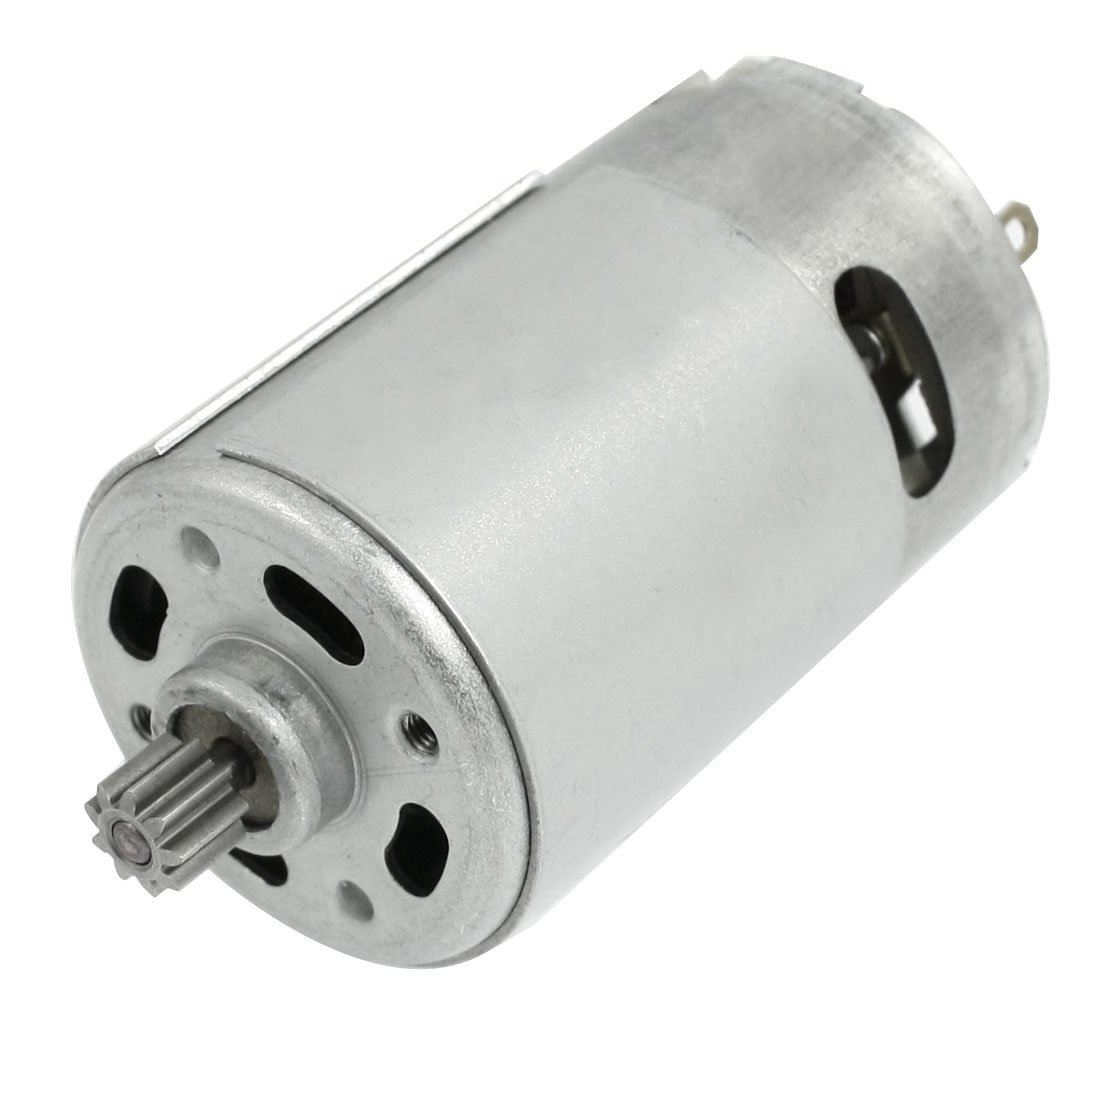 CNIM Hot DC 14.4 V 9 99 cutting teeth Gear Motor replacement for rechargeable Metal electric drillCNIM Hot DC 14.4 V 9 99 cutting teeth Gear Motor replacement for rechargeable Metal electric drill